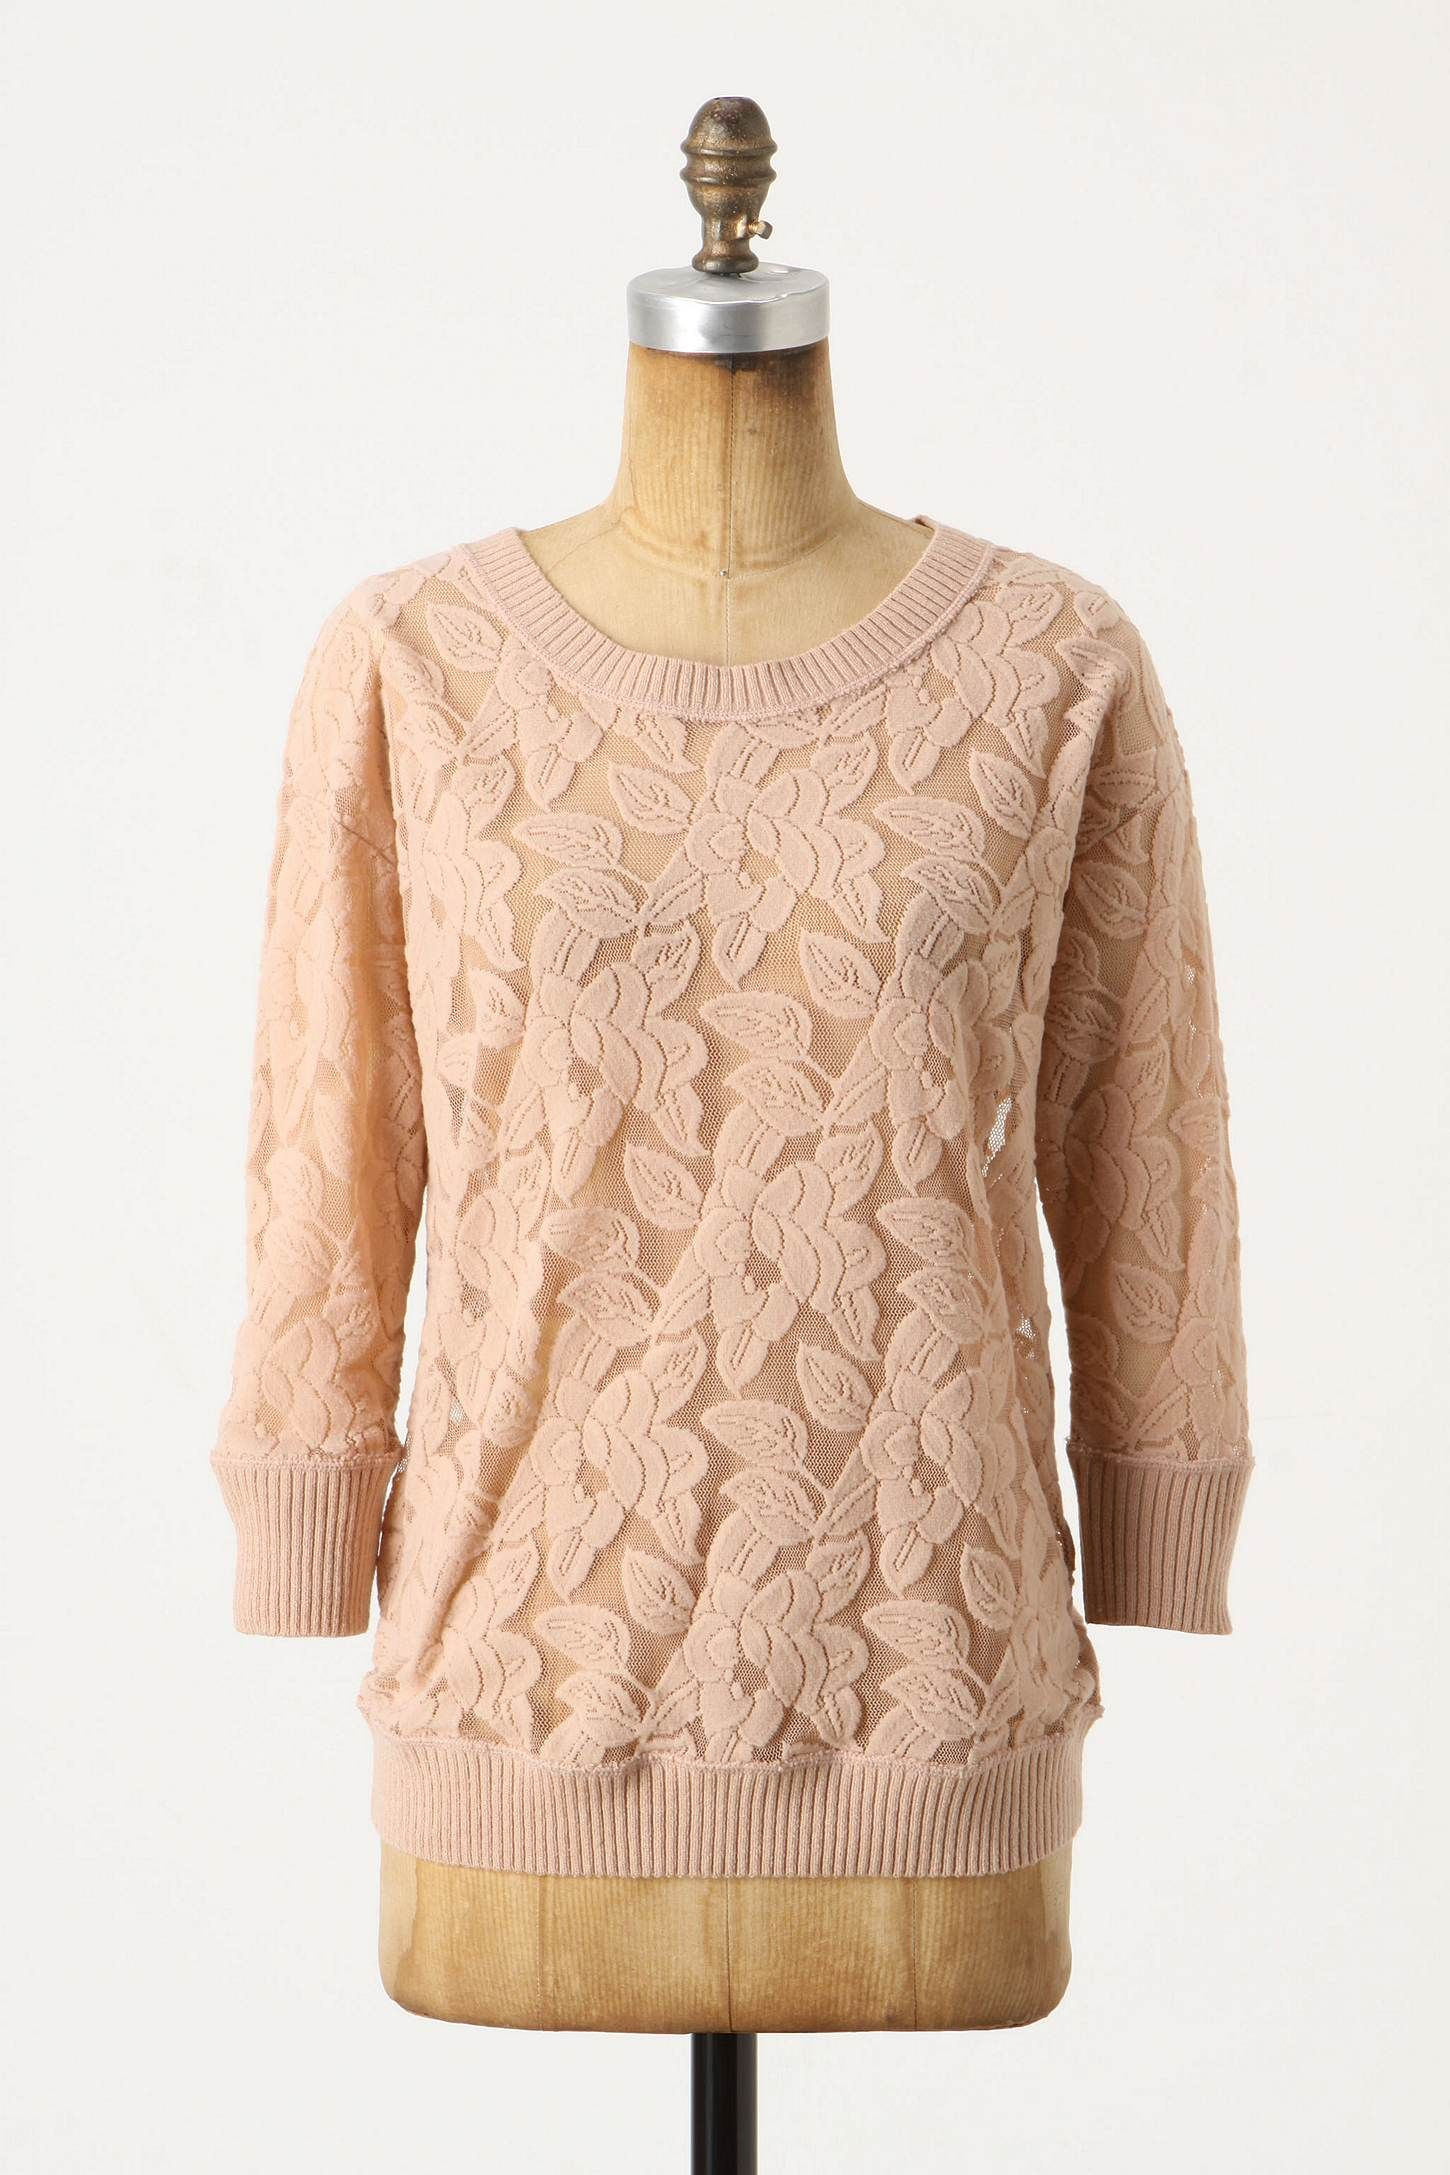 Linen Corrigan Chair | Pullover, Clothes and Lace sweater